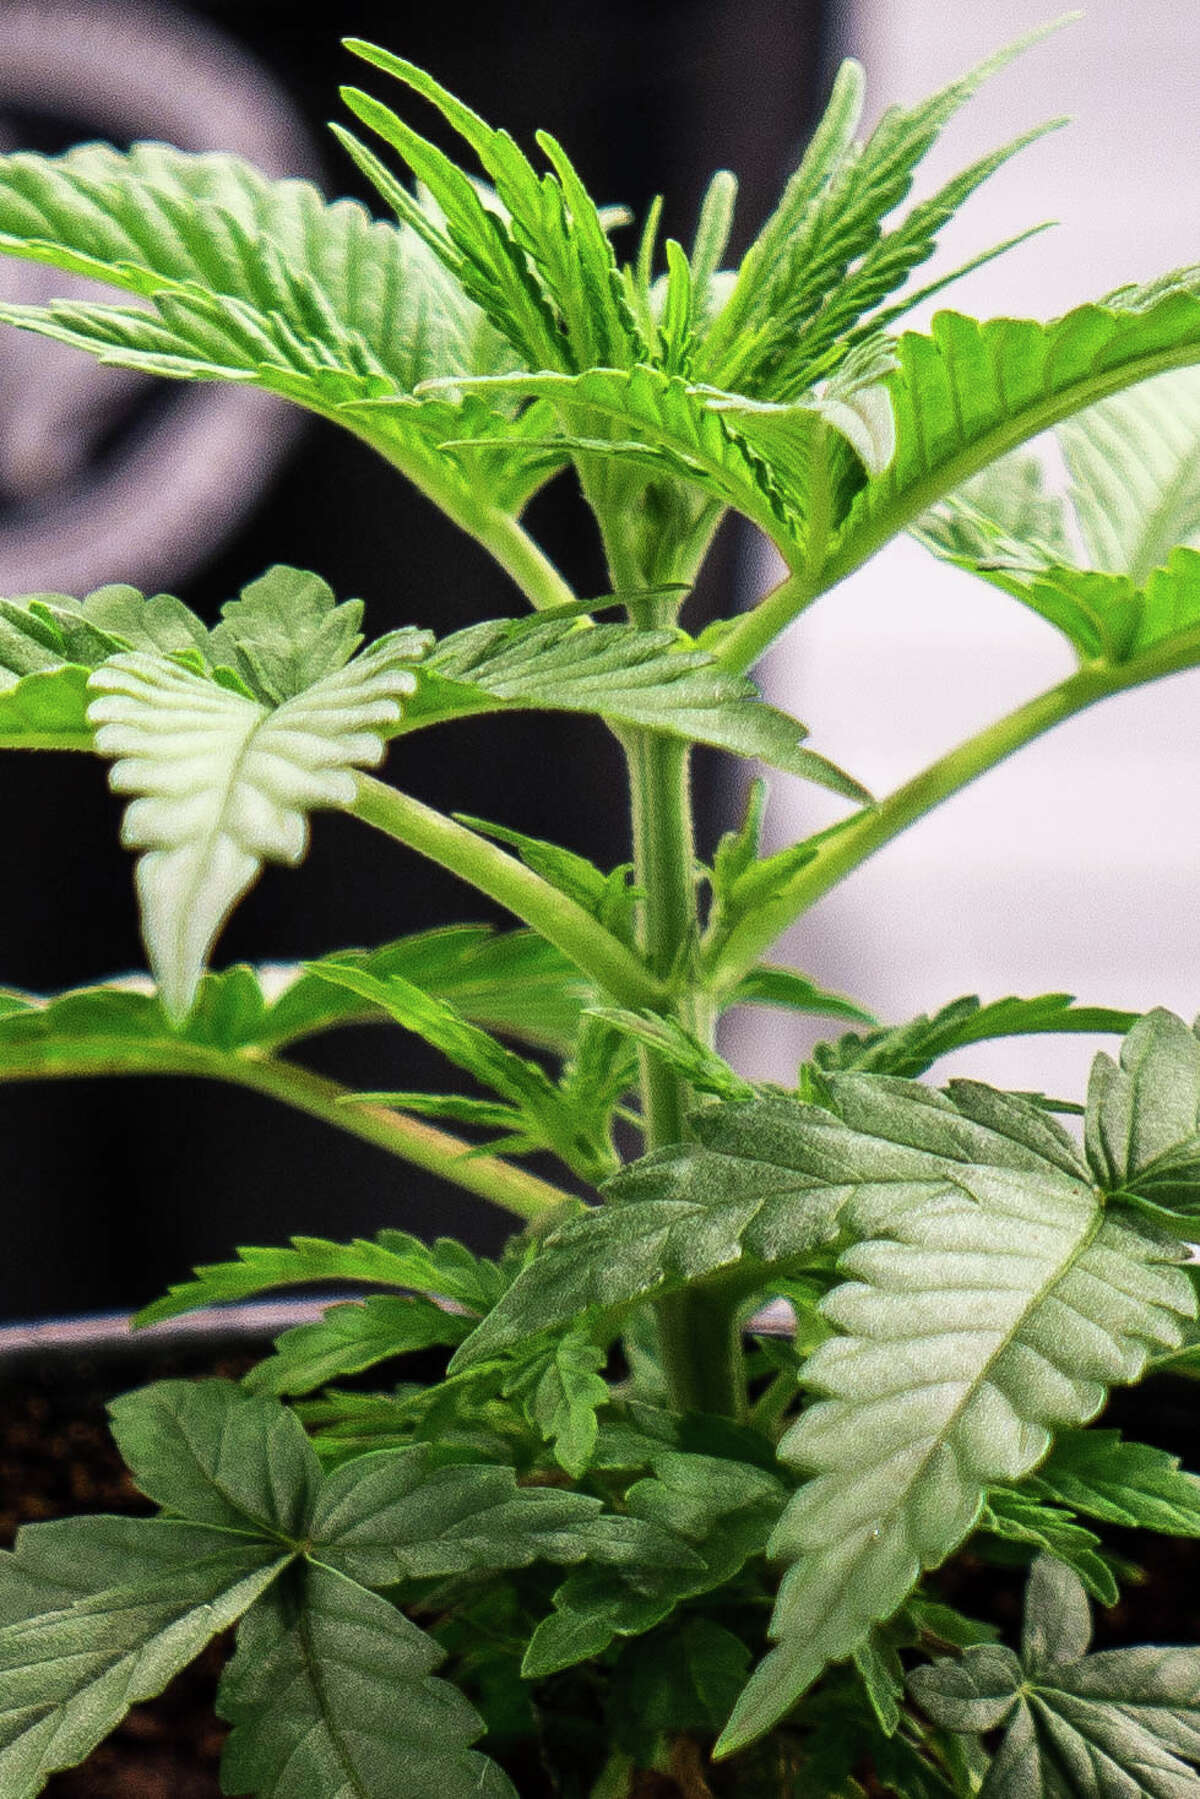 The first crop of legal medical marijuana in Texas is growing in the state, with qualifying patients able to purchase prescription orders this month.